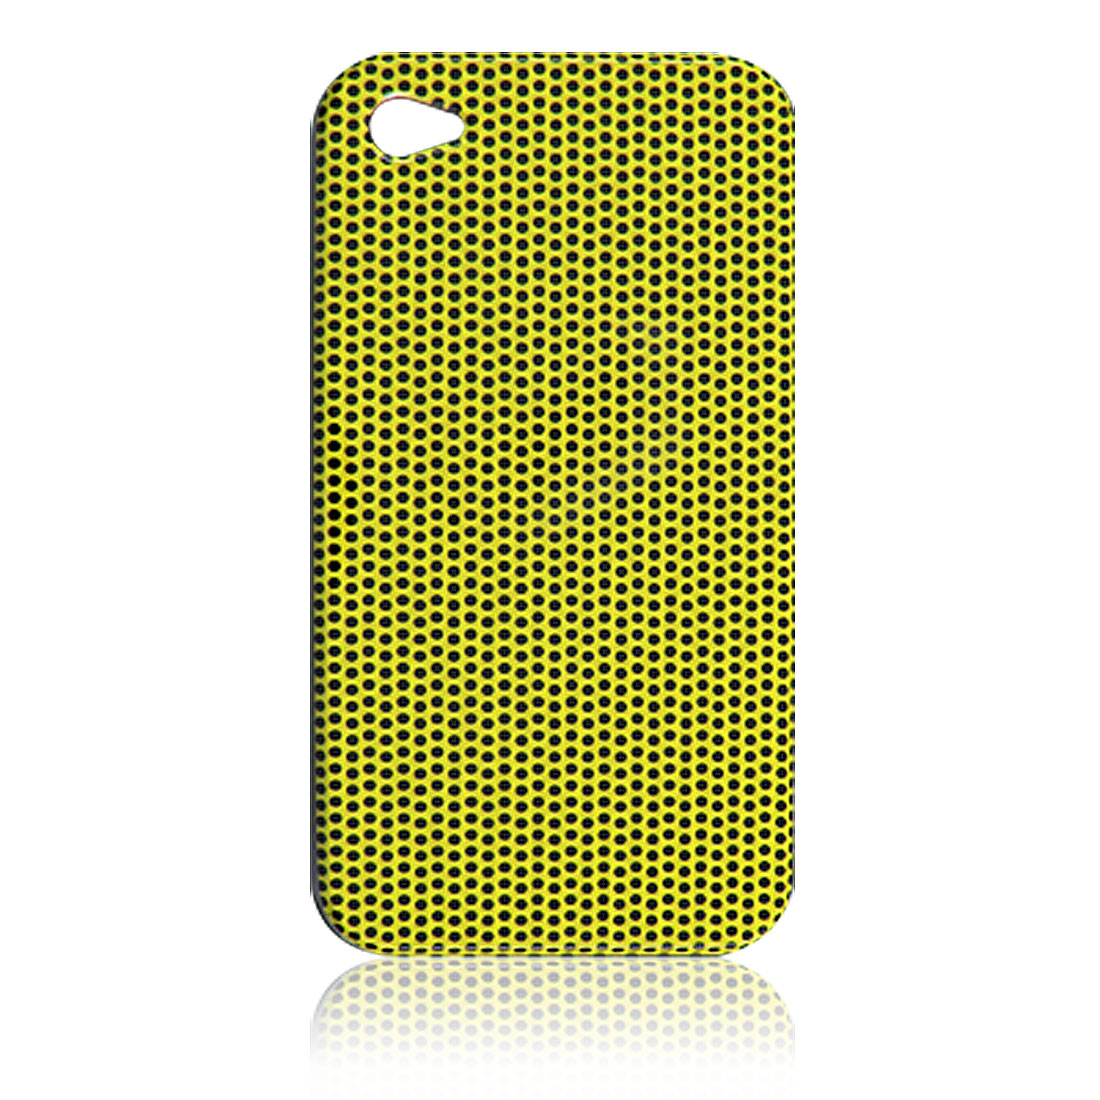 Hard Plastic Back Case Cover Yellow for Apple iPhone 4 4G